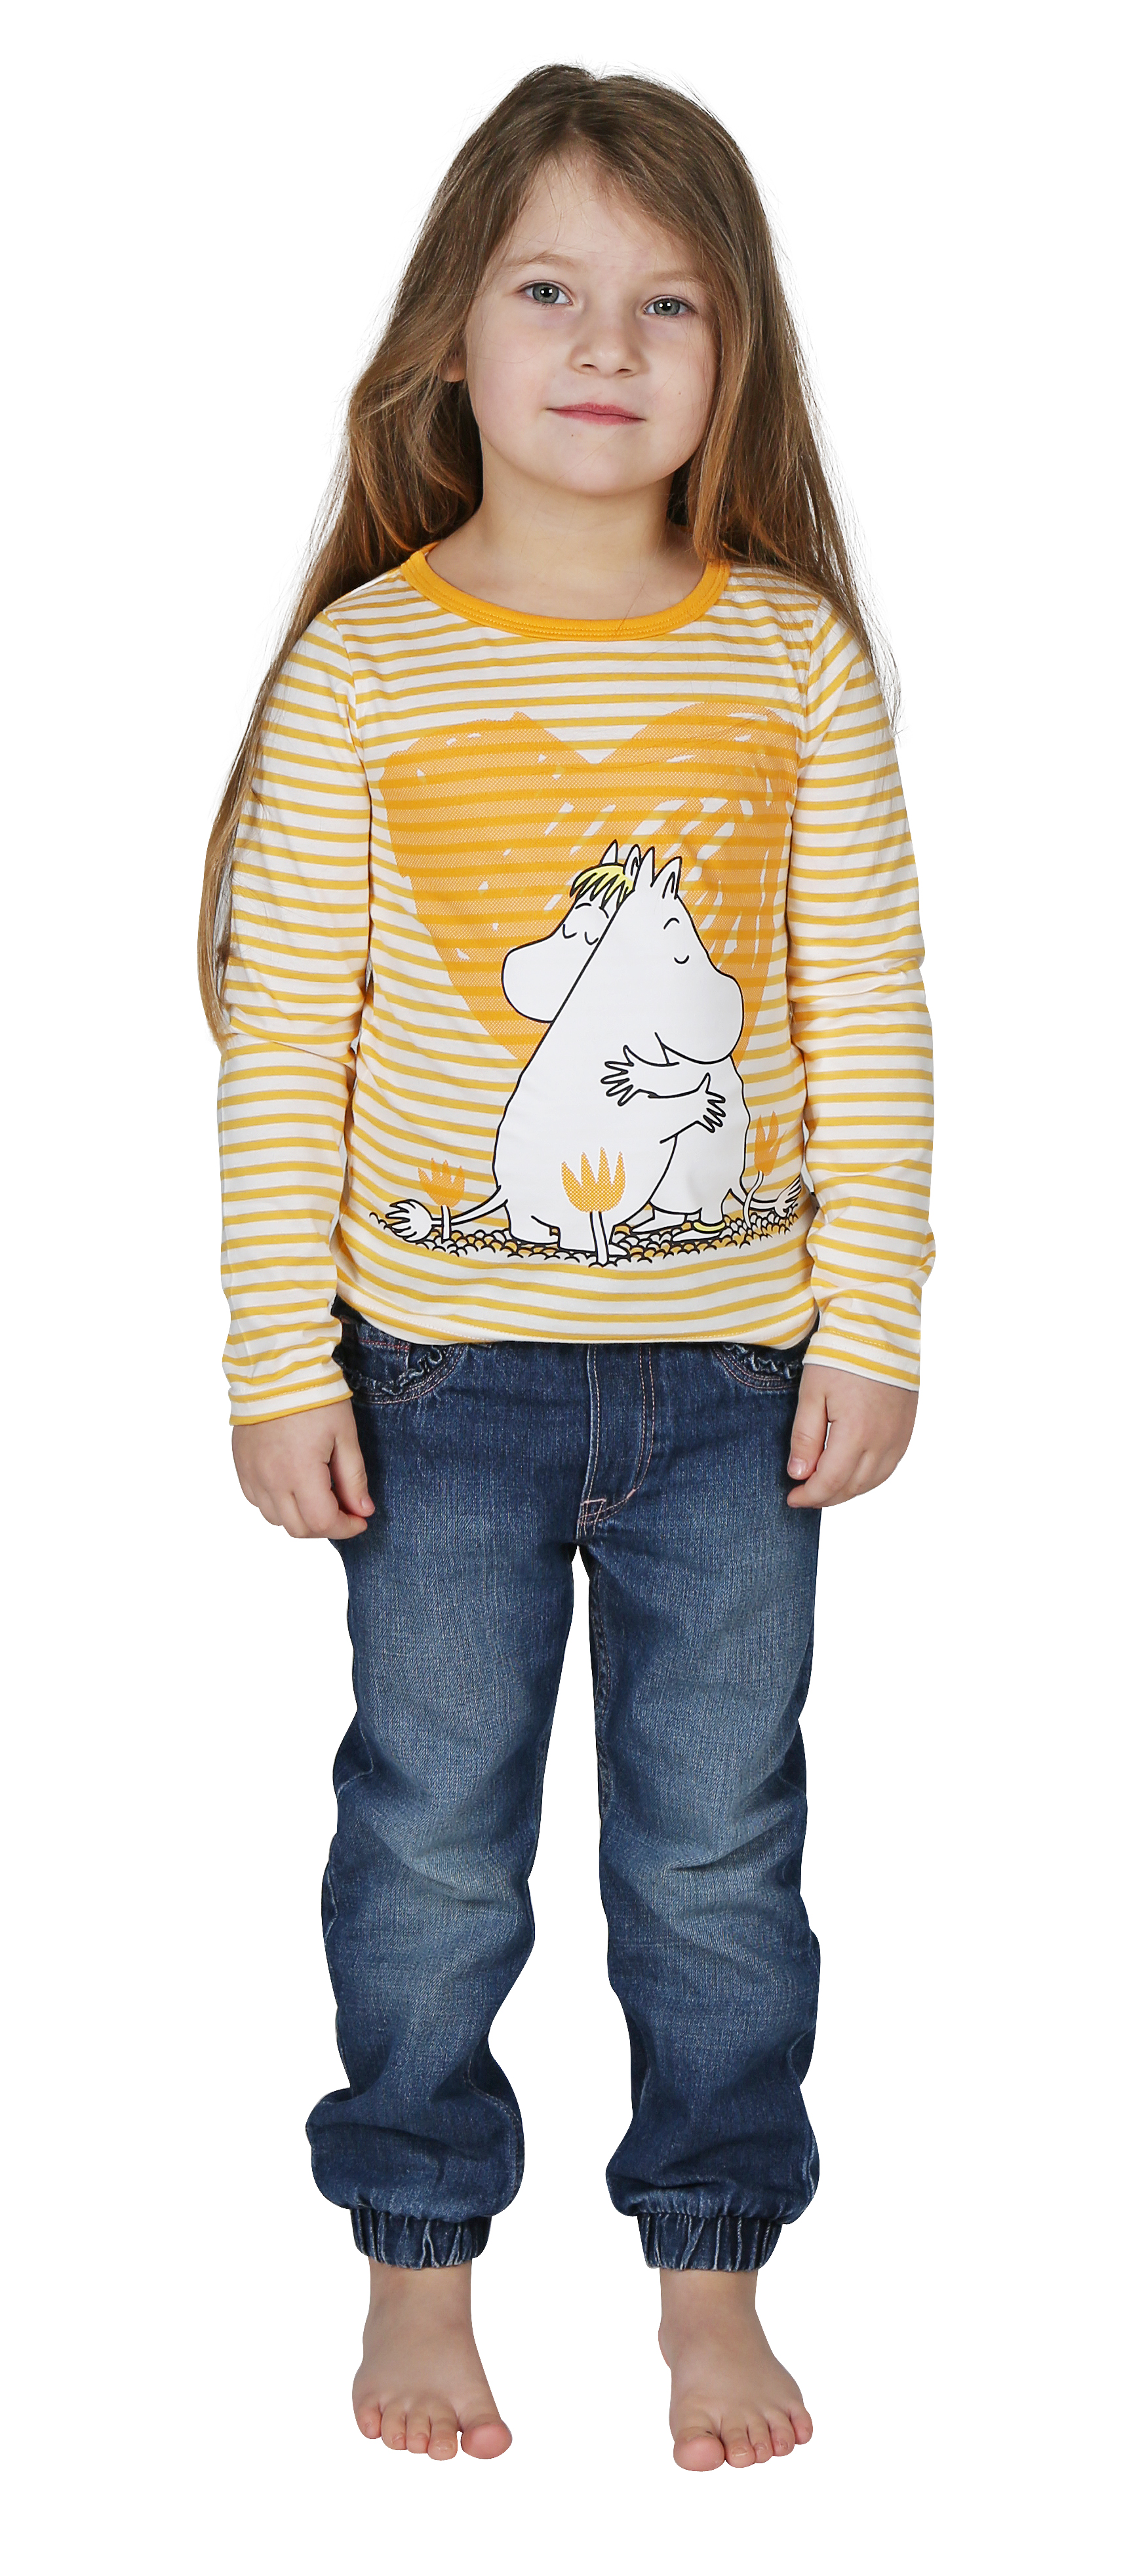 Martinex Moomin Love shirt